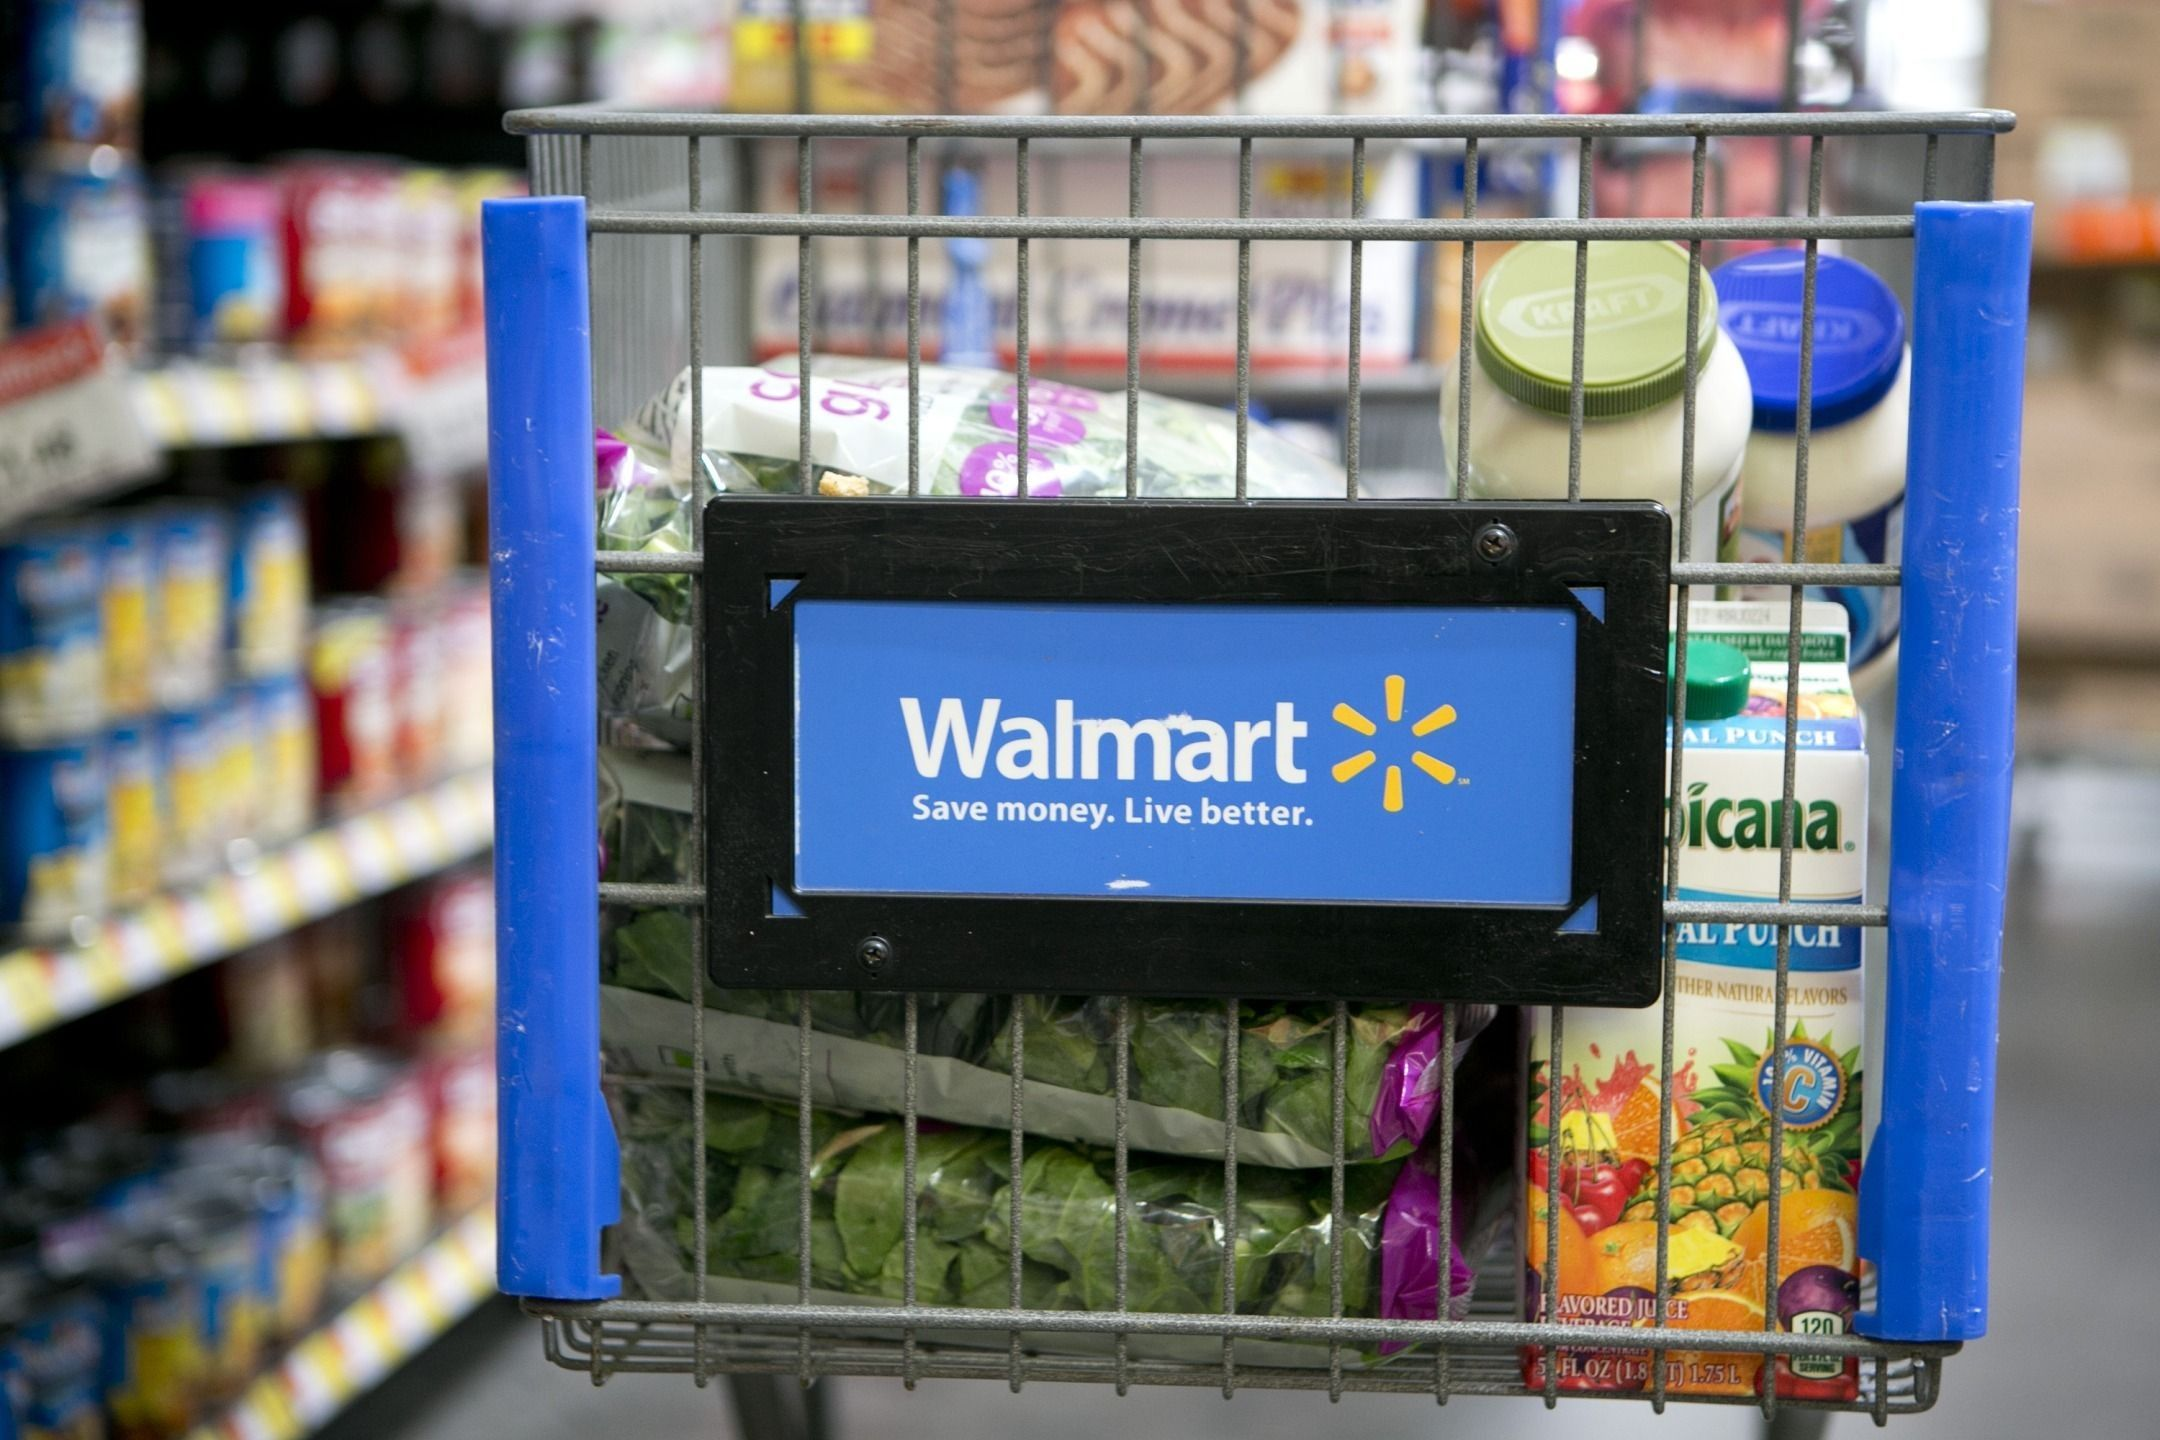 Walmart Will Put the Groceries in the Fridge While You're Out